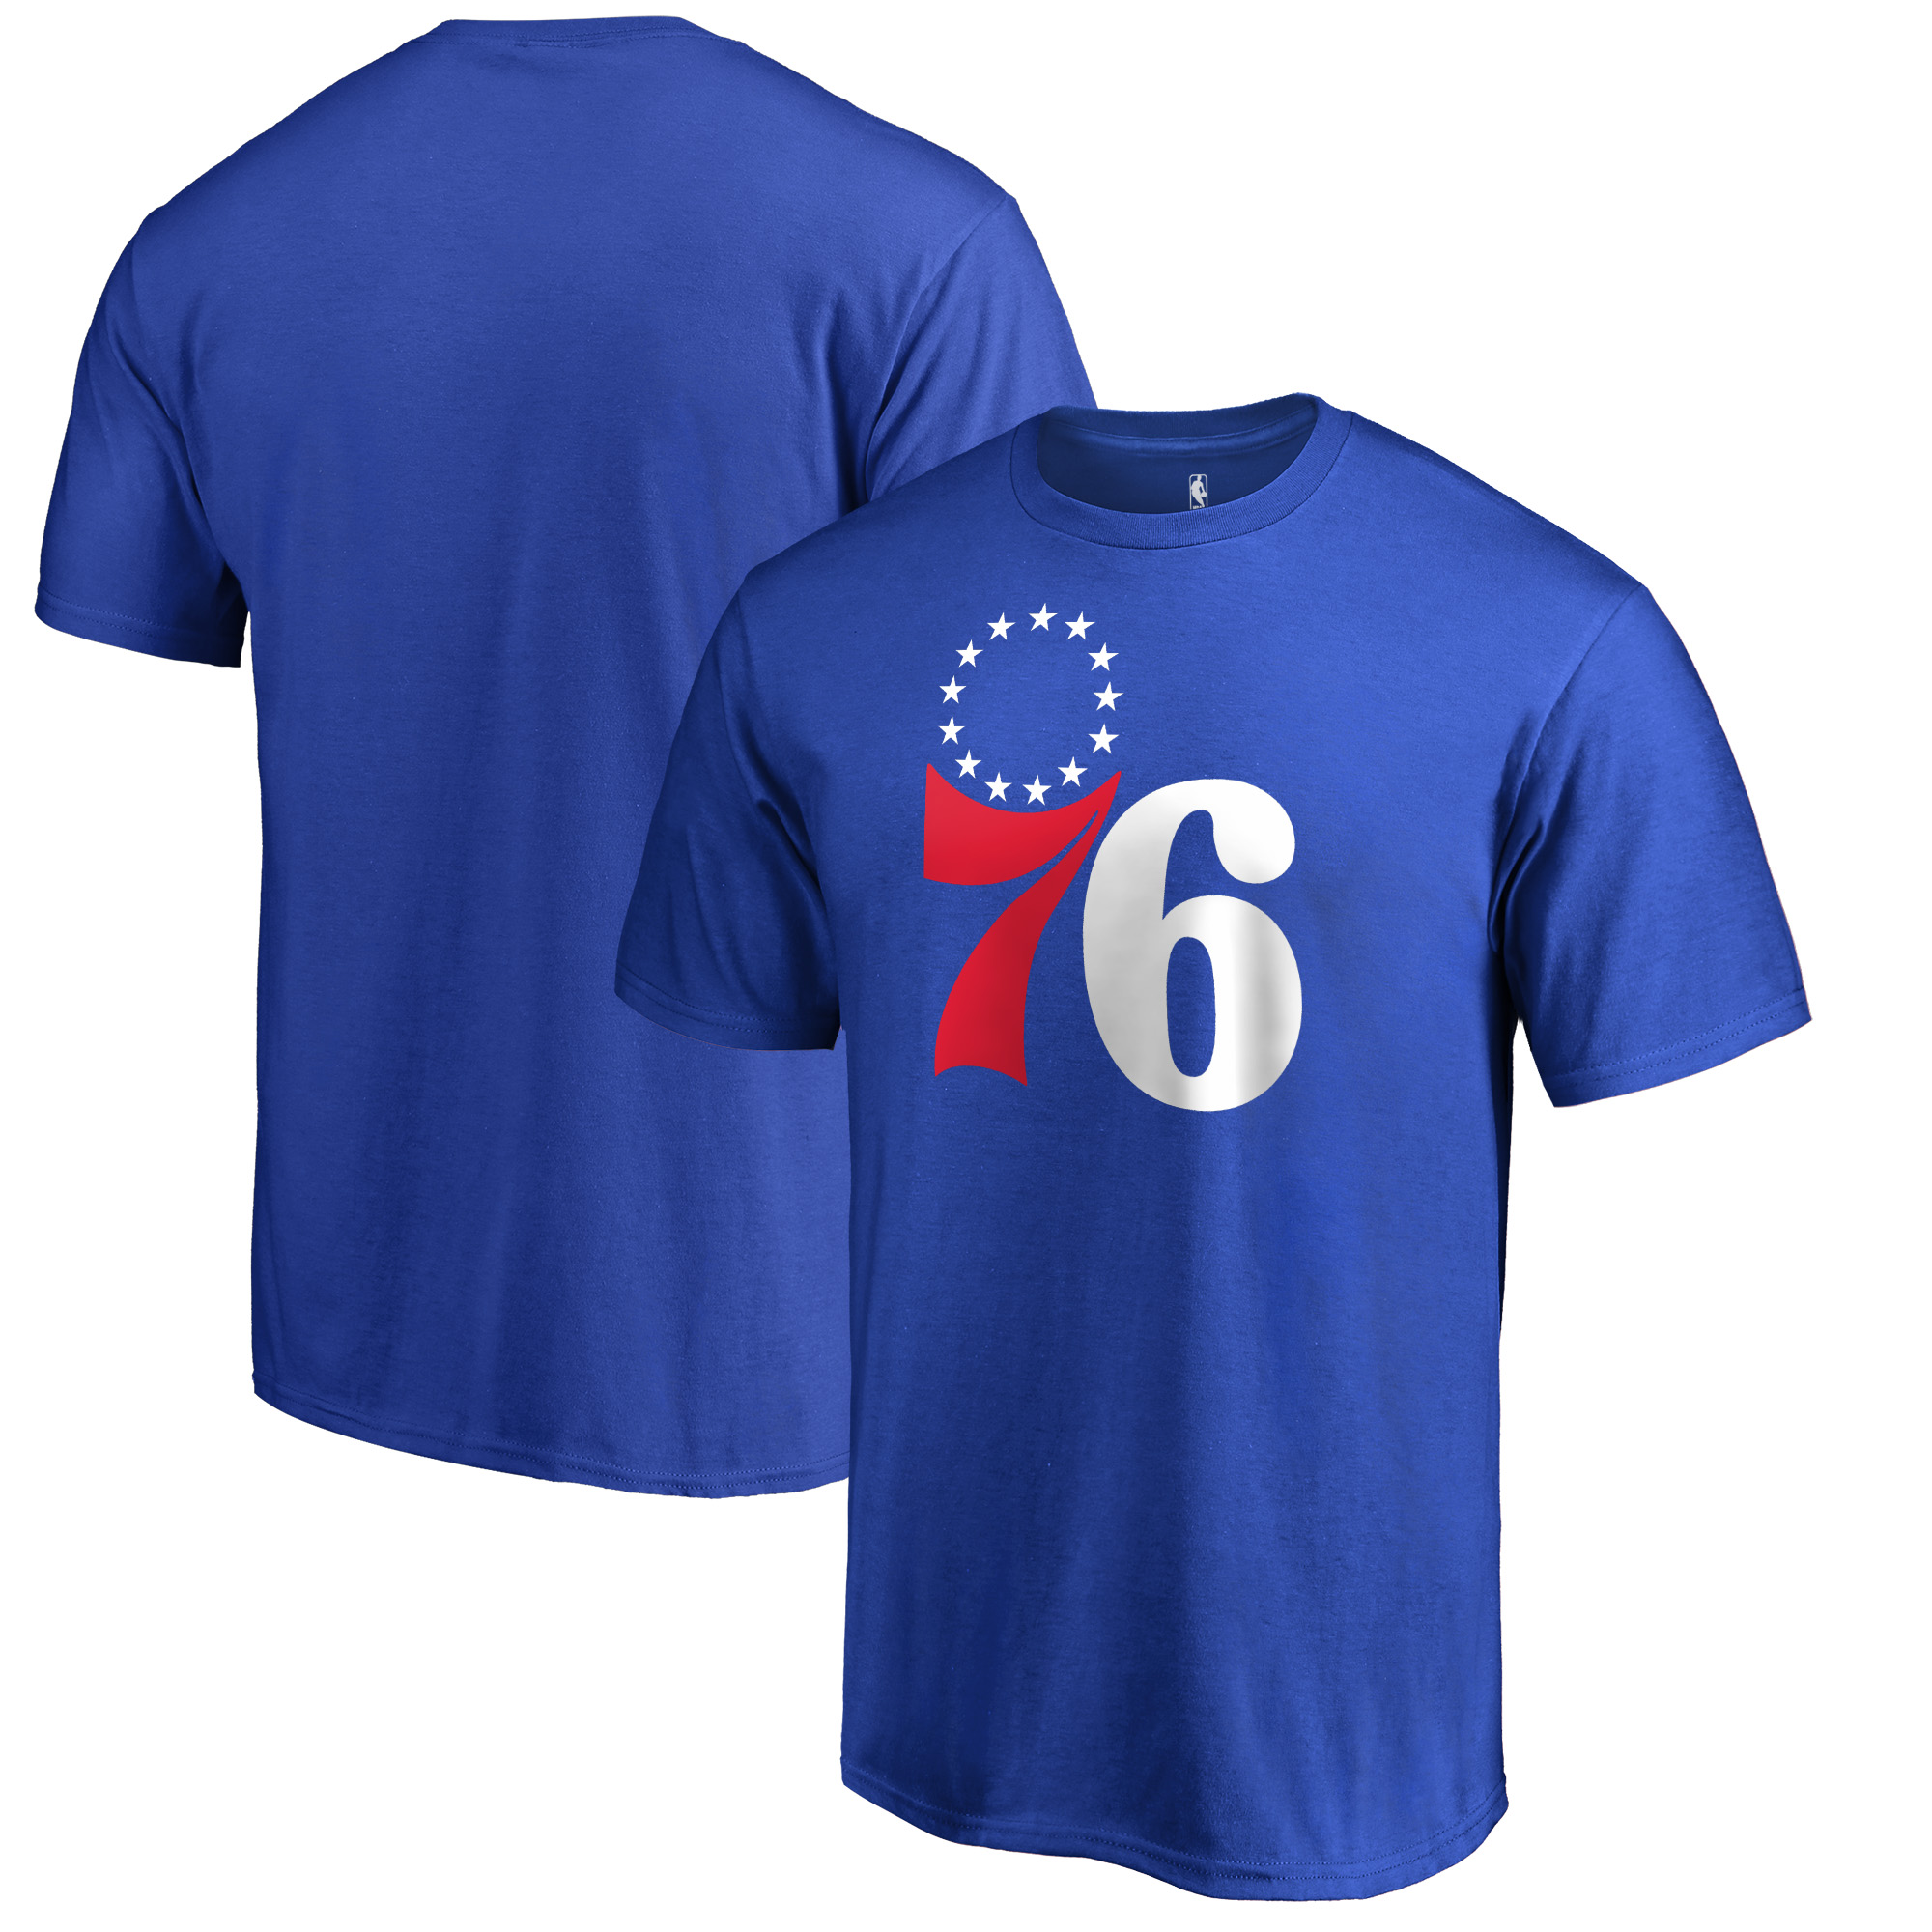 Philadelphia 76ers Fanatics Branded Secondary Logo T-Shirt - Royal